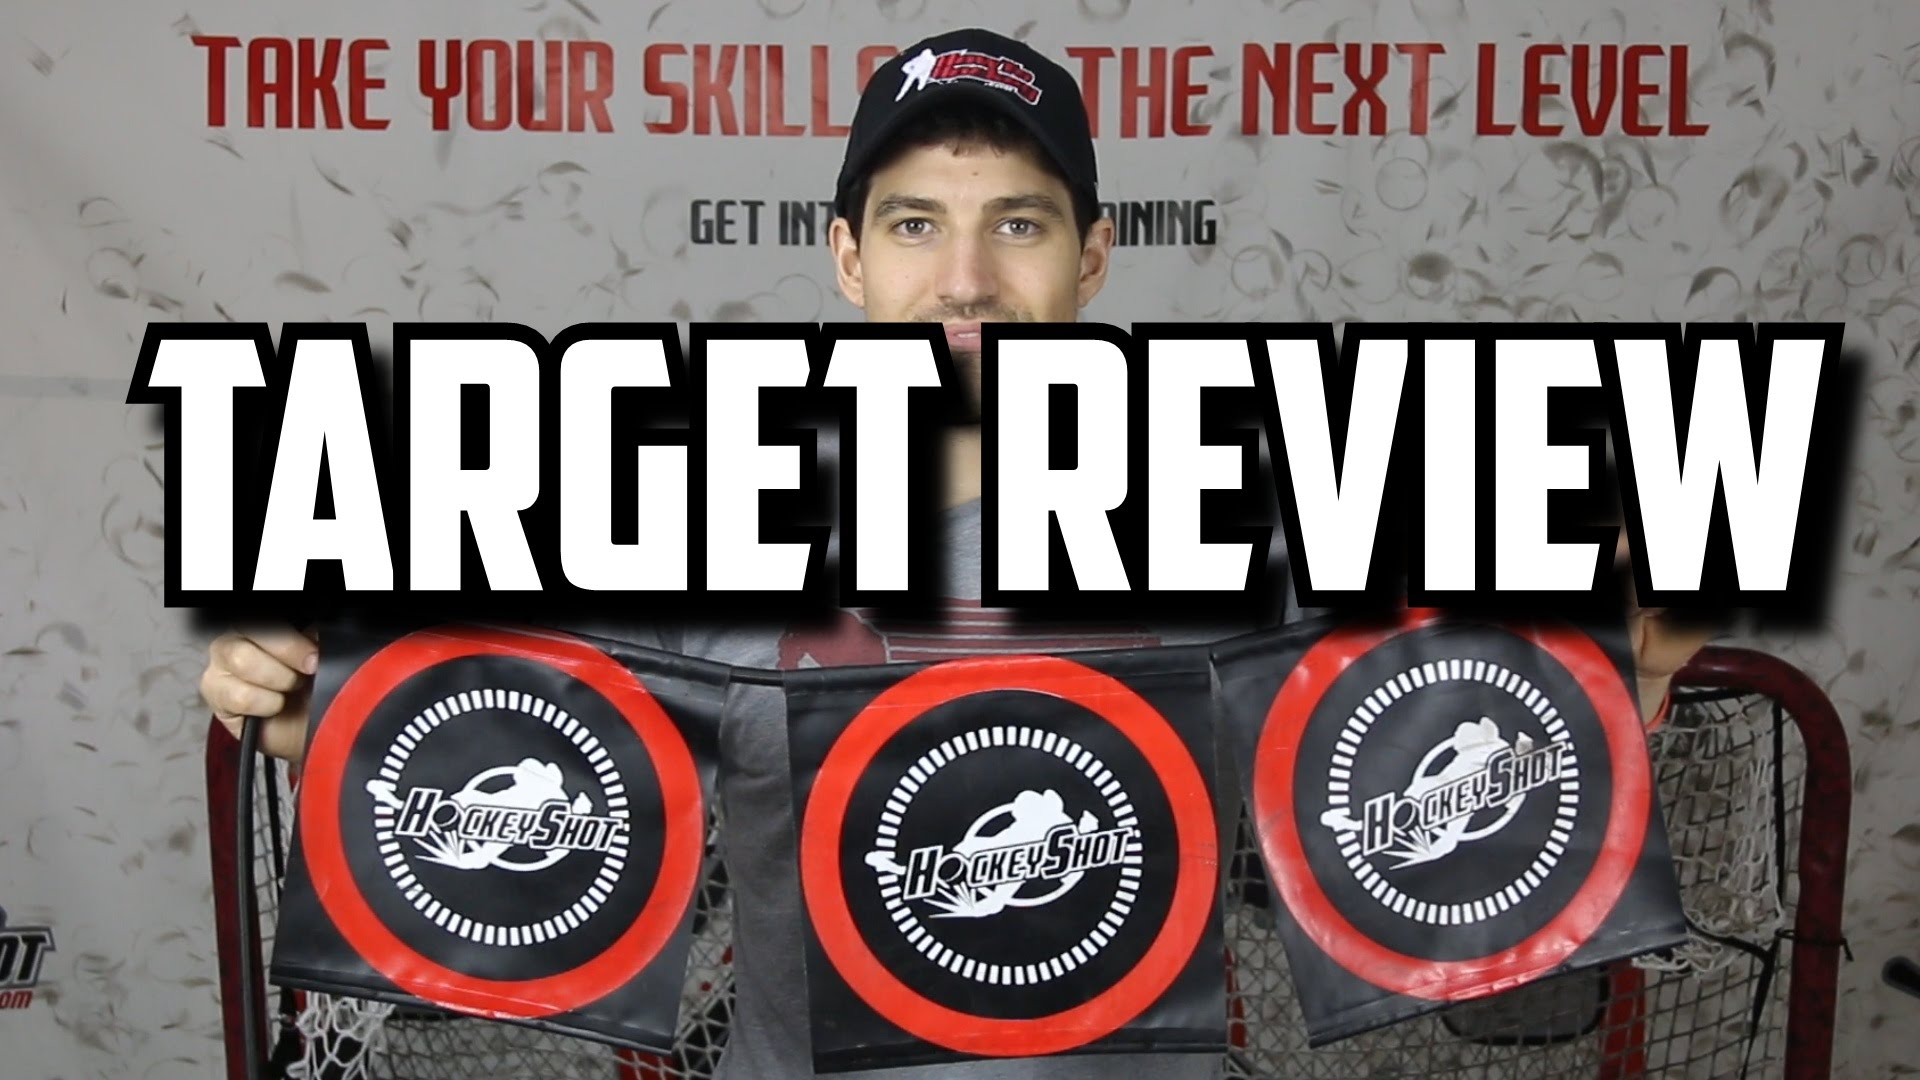 Hockey Shot Target Review